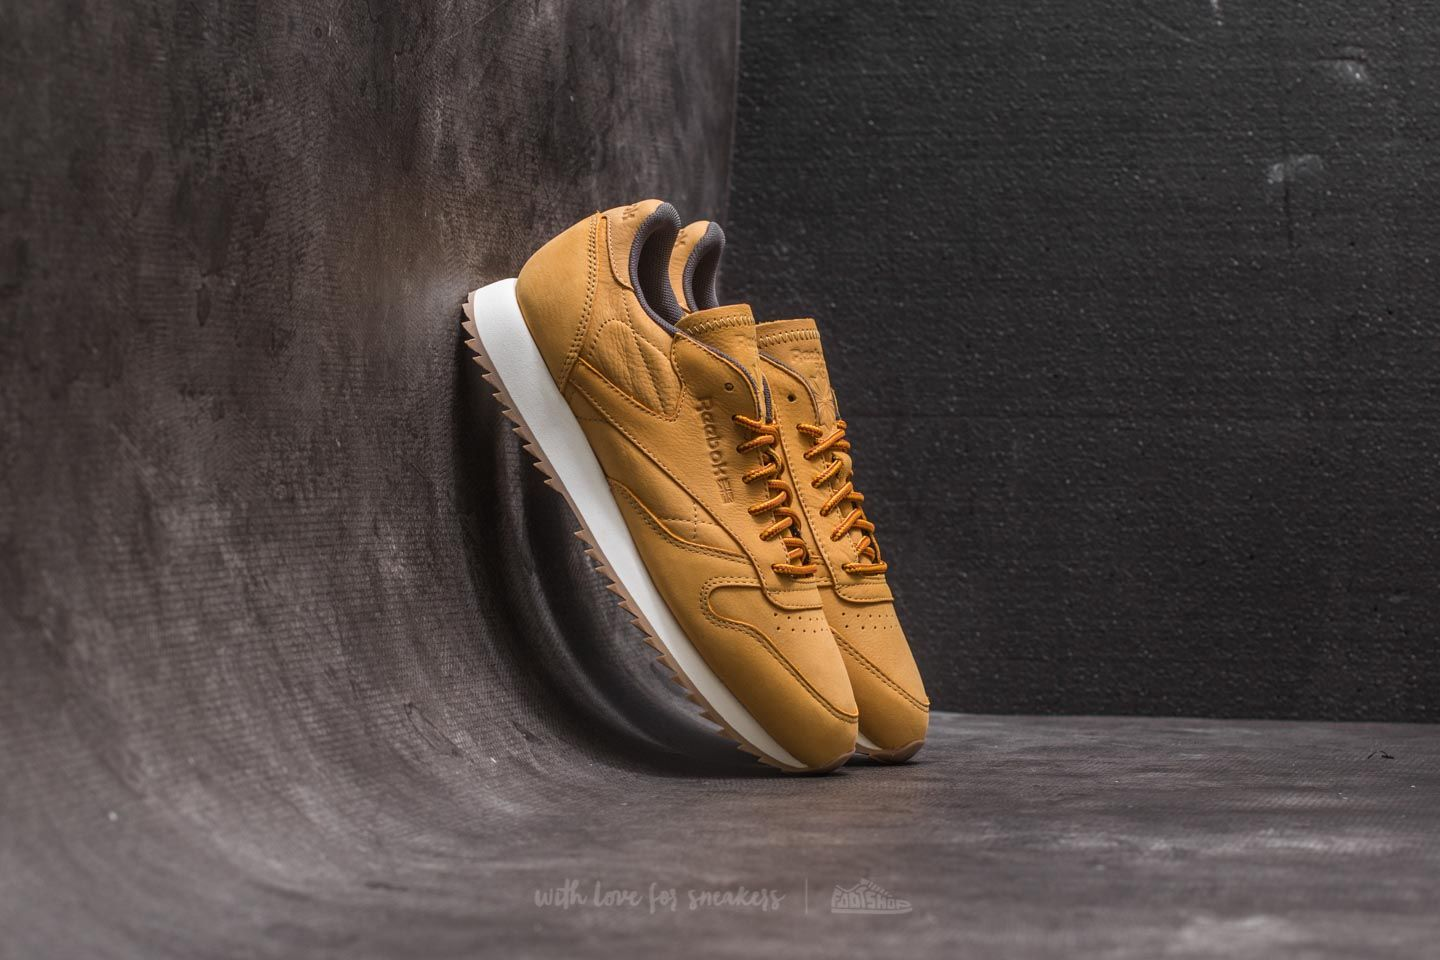 877a163dc83 Reebok Classic Leather Ripple WP Golden Wheat  Urban Grey  Chalk ...